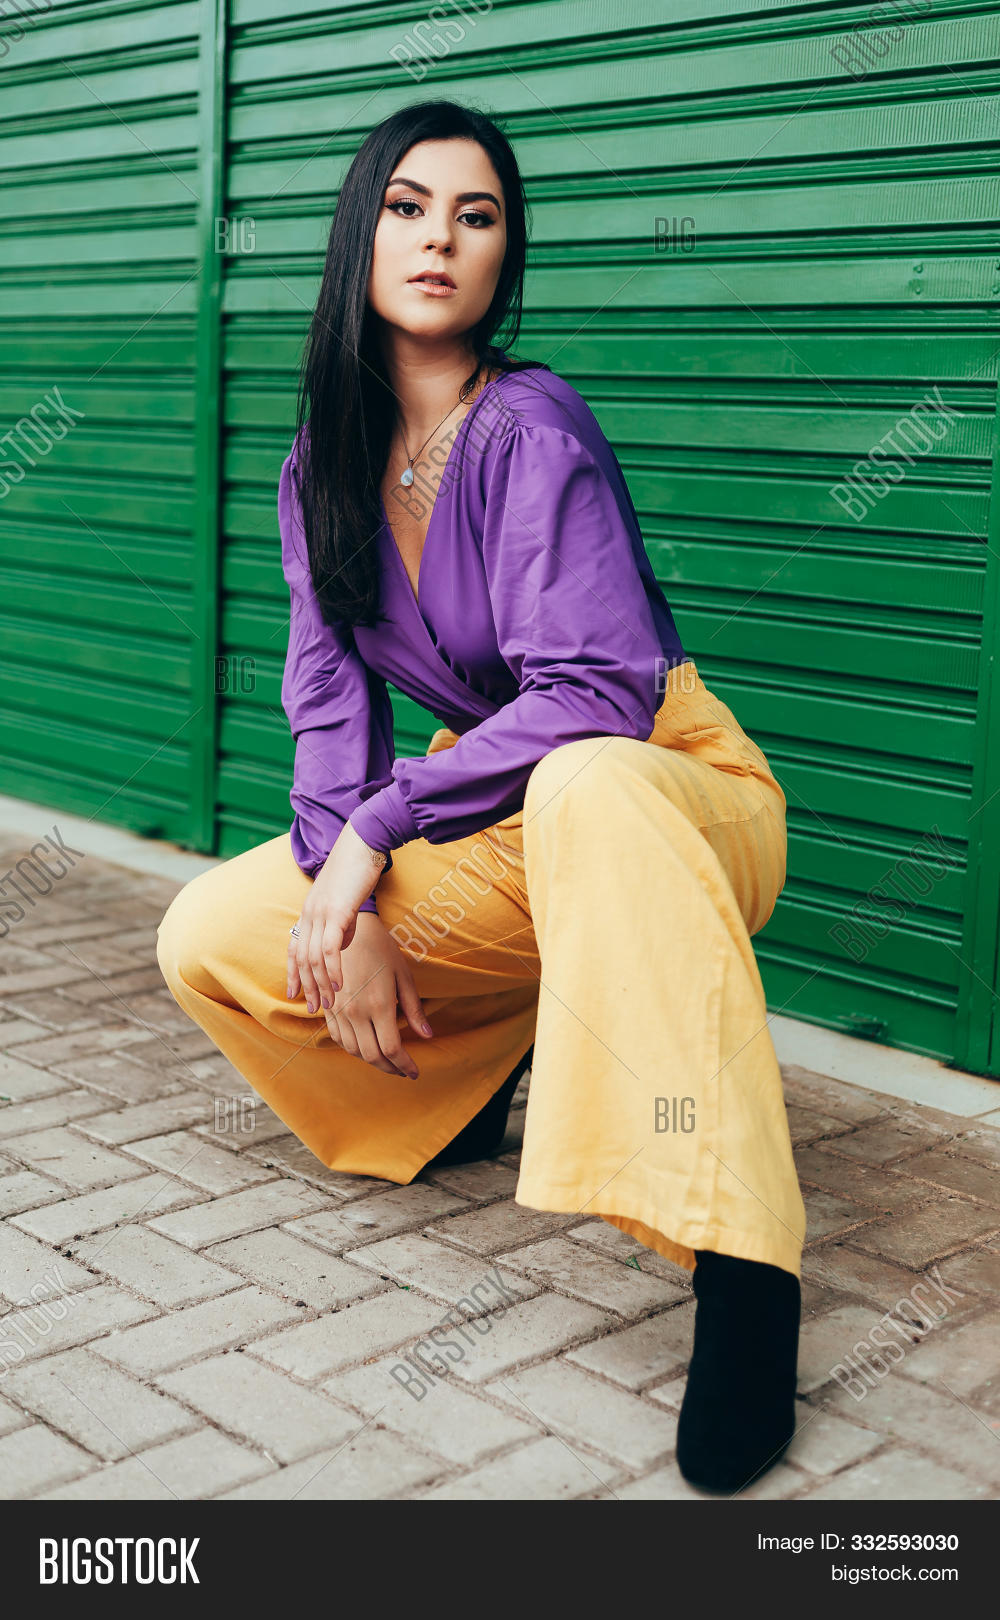 Outdoor Fashion Portrait Of Woman Wearing Clothes In Complementary Yellow And Purple Colors